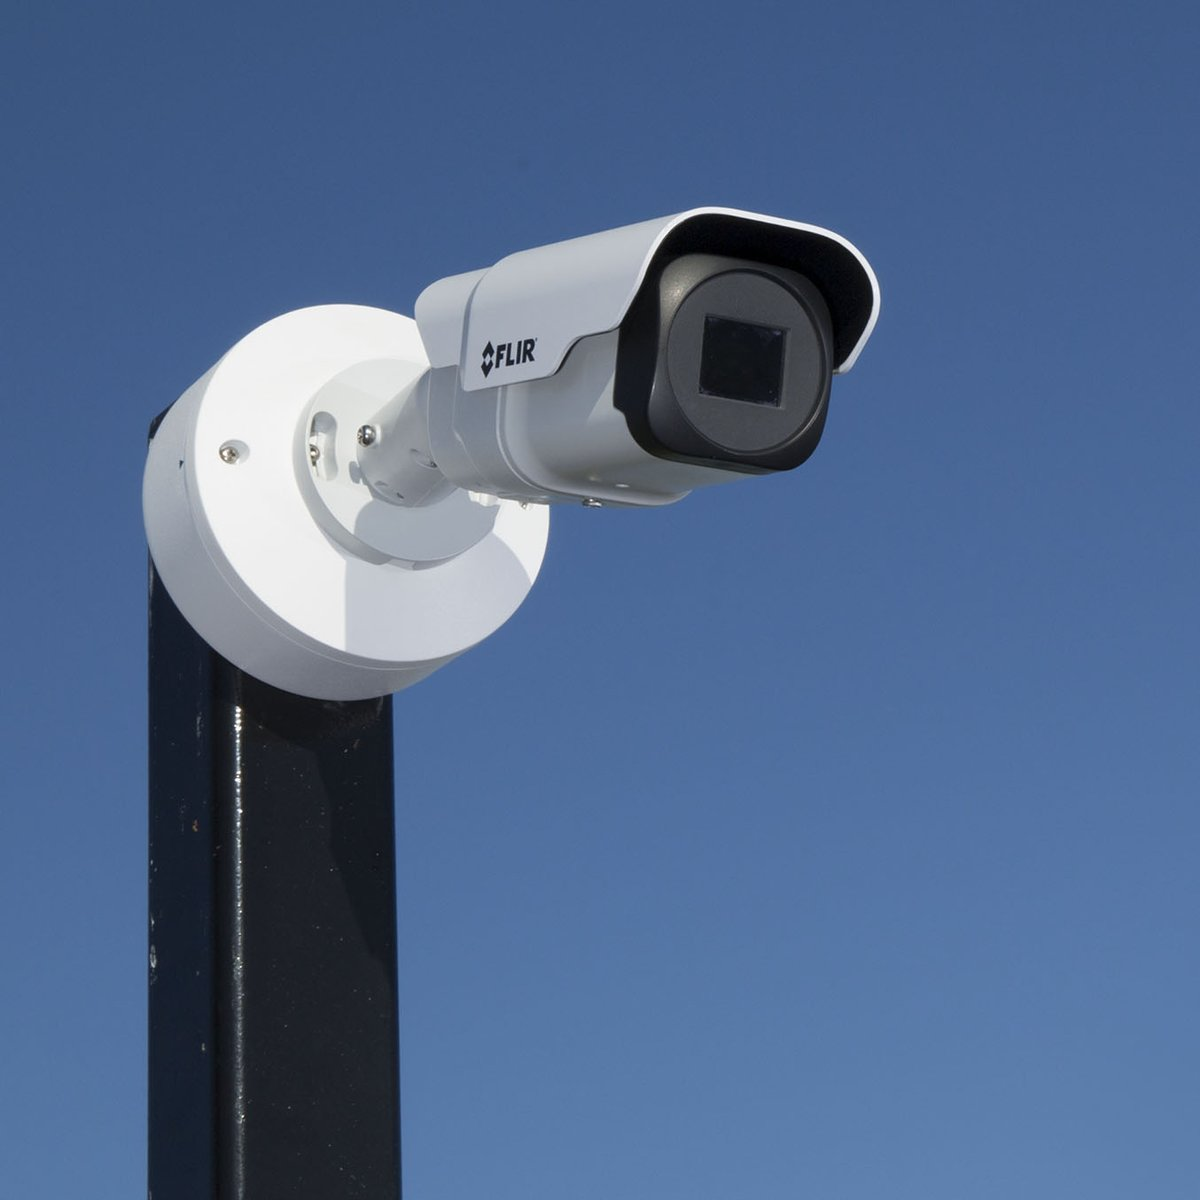 With on-board analytics that classify human or vehicular intrusions, FLIR Elara™ FB-Series ID is an ideal solution for perimeter intrusion detection. Learn more: https://bit.ly/3b1vSxg